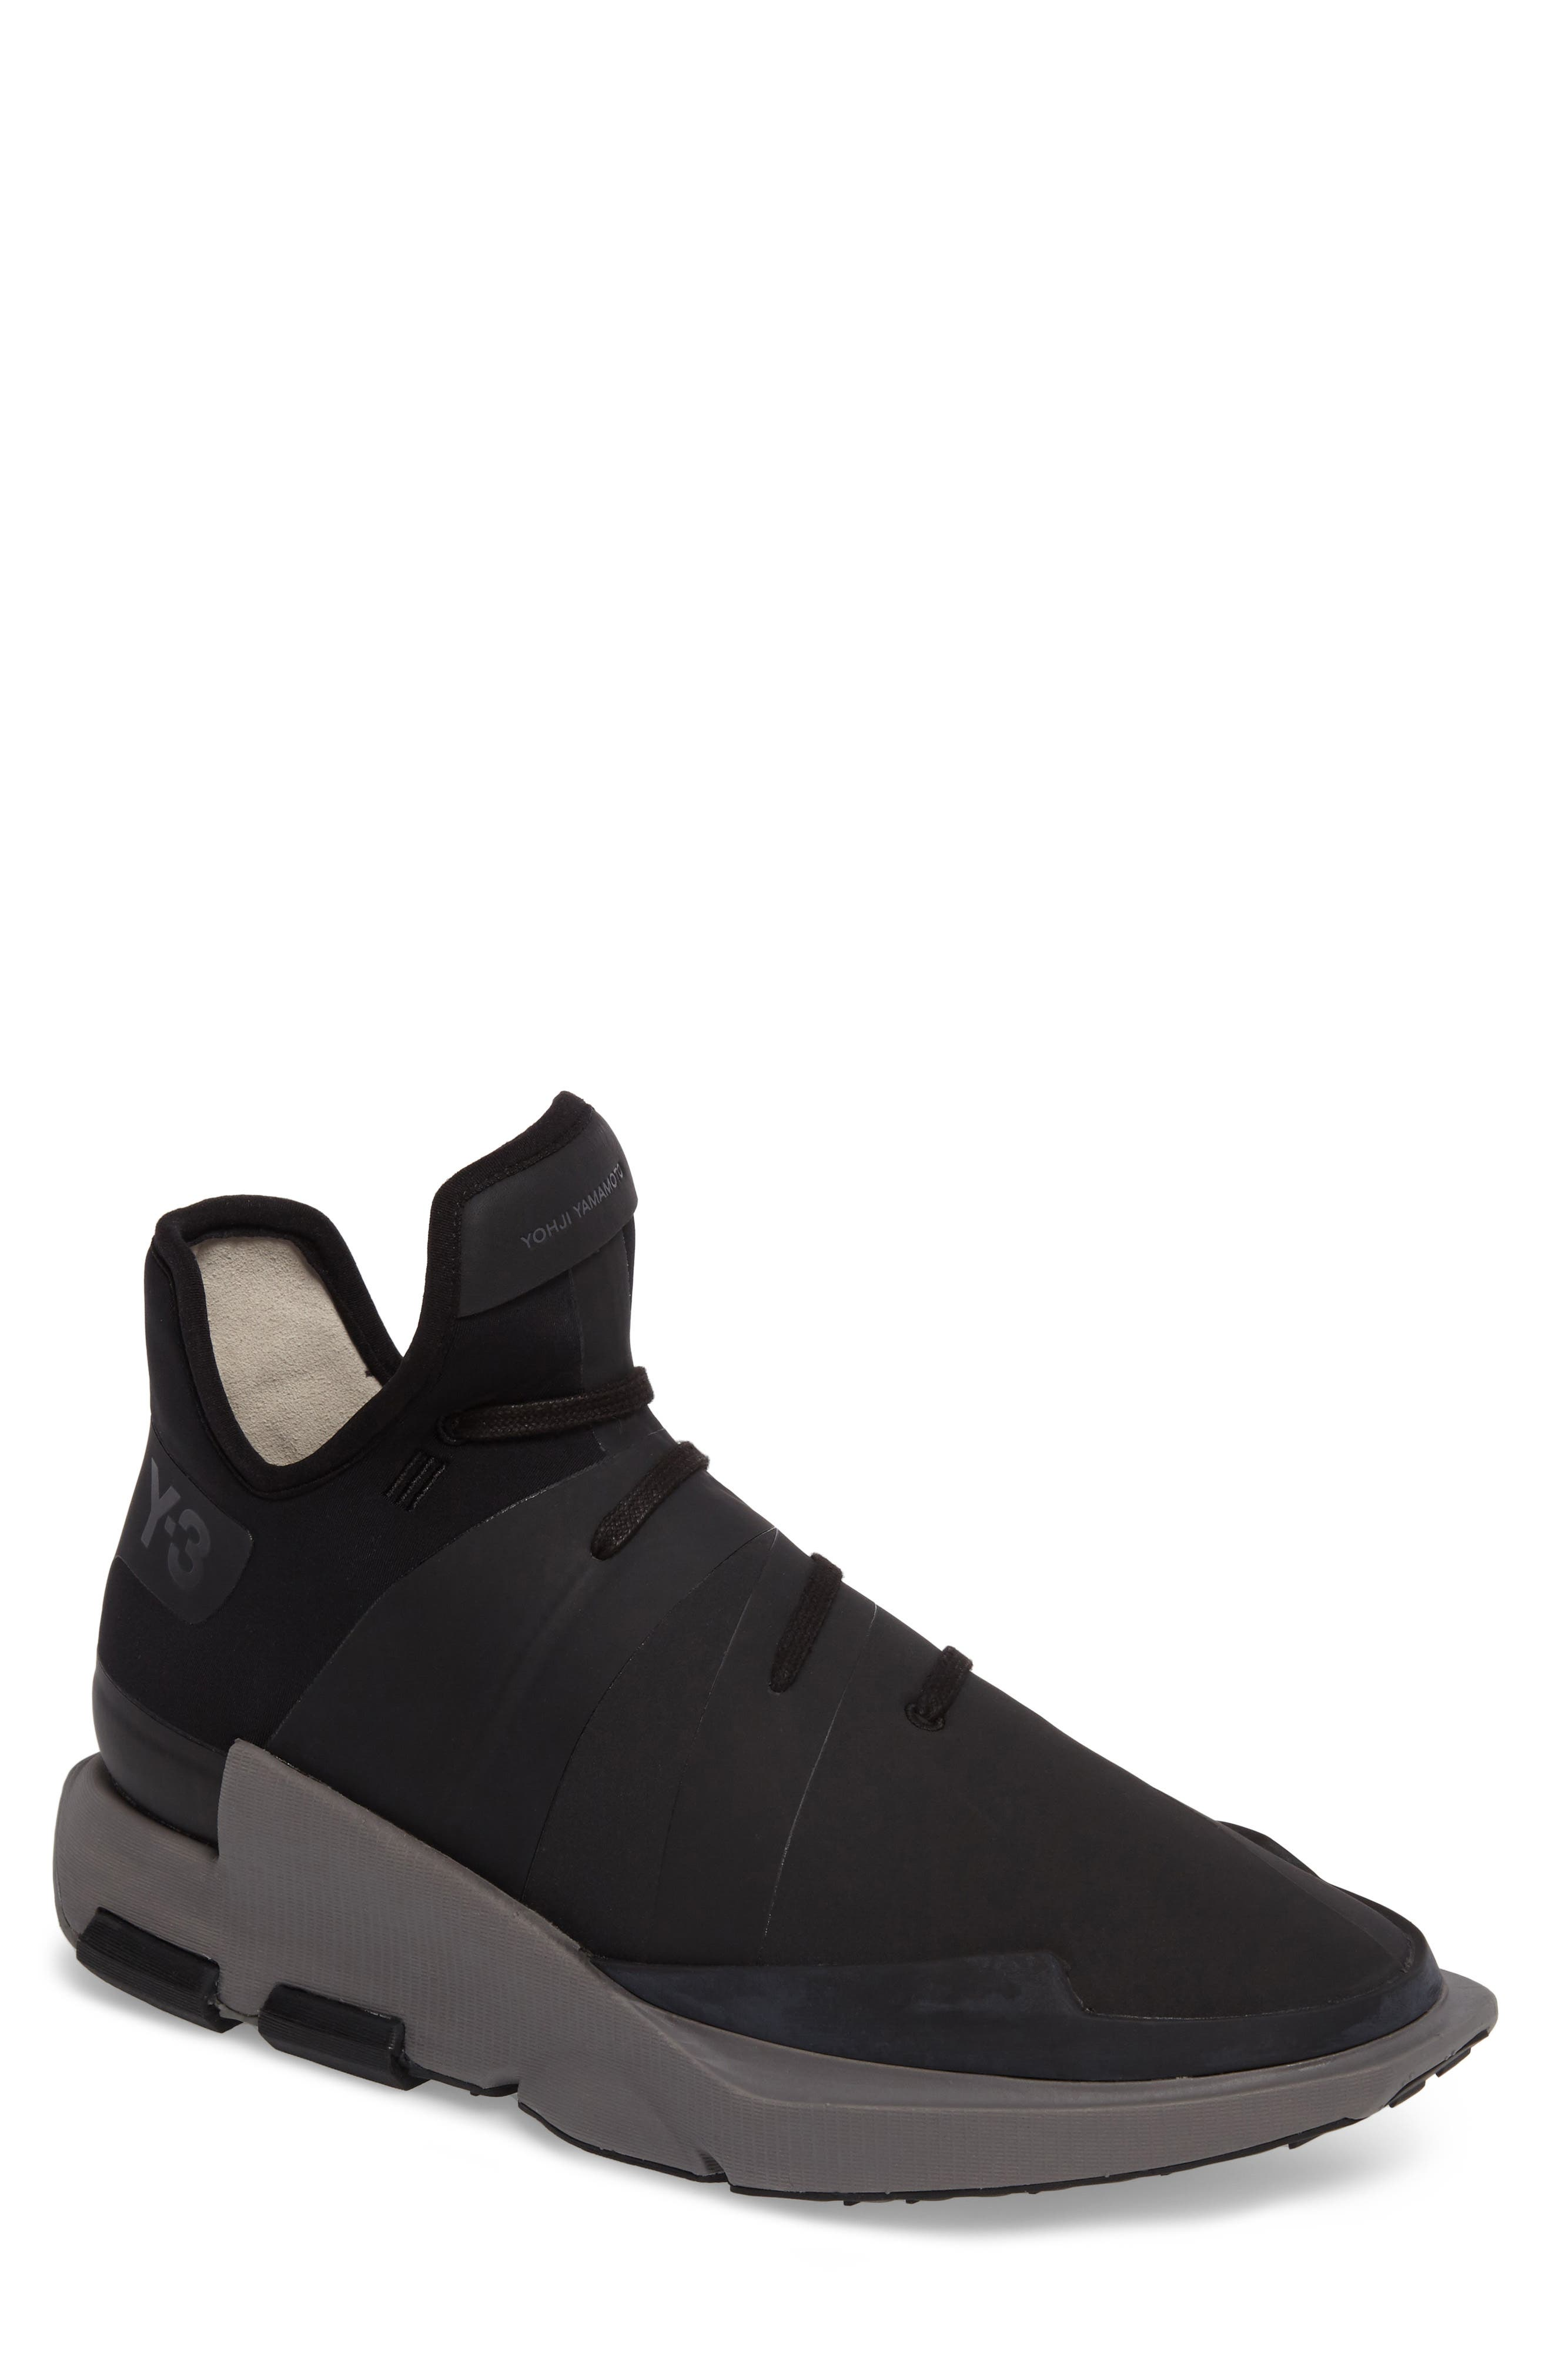 Y-3 Noci Low Sneaker (Men)